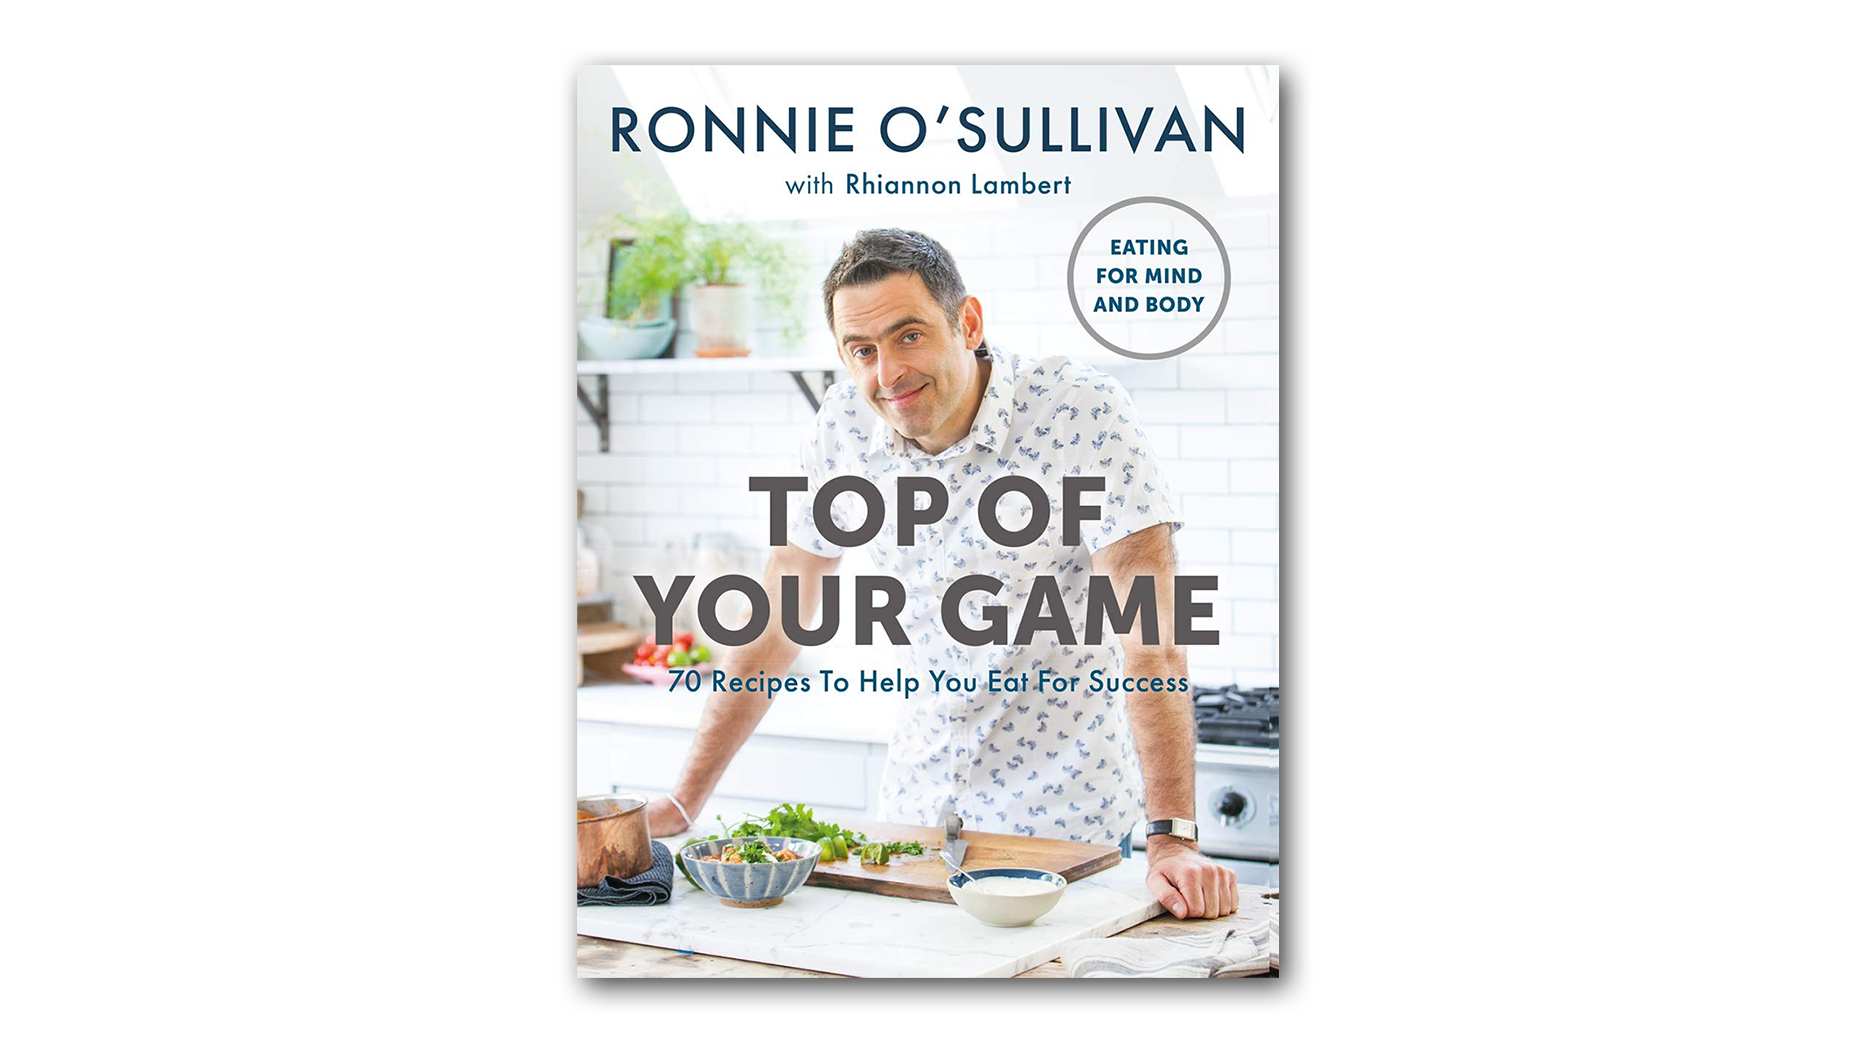 Top Of Your Game by Ronnie O'Sullivan